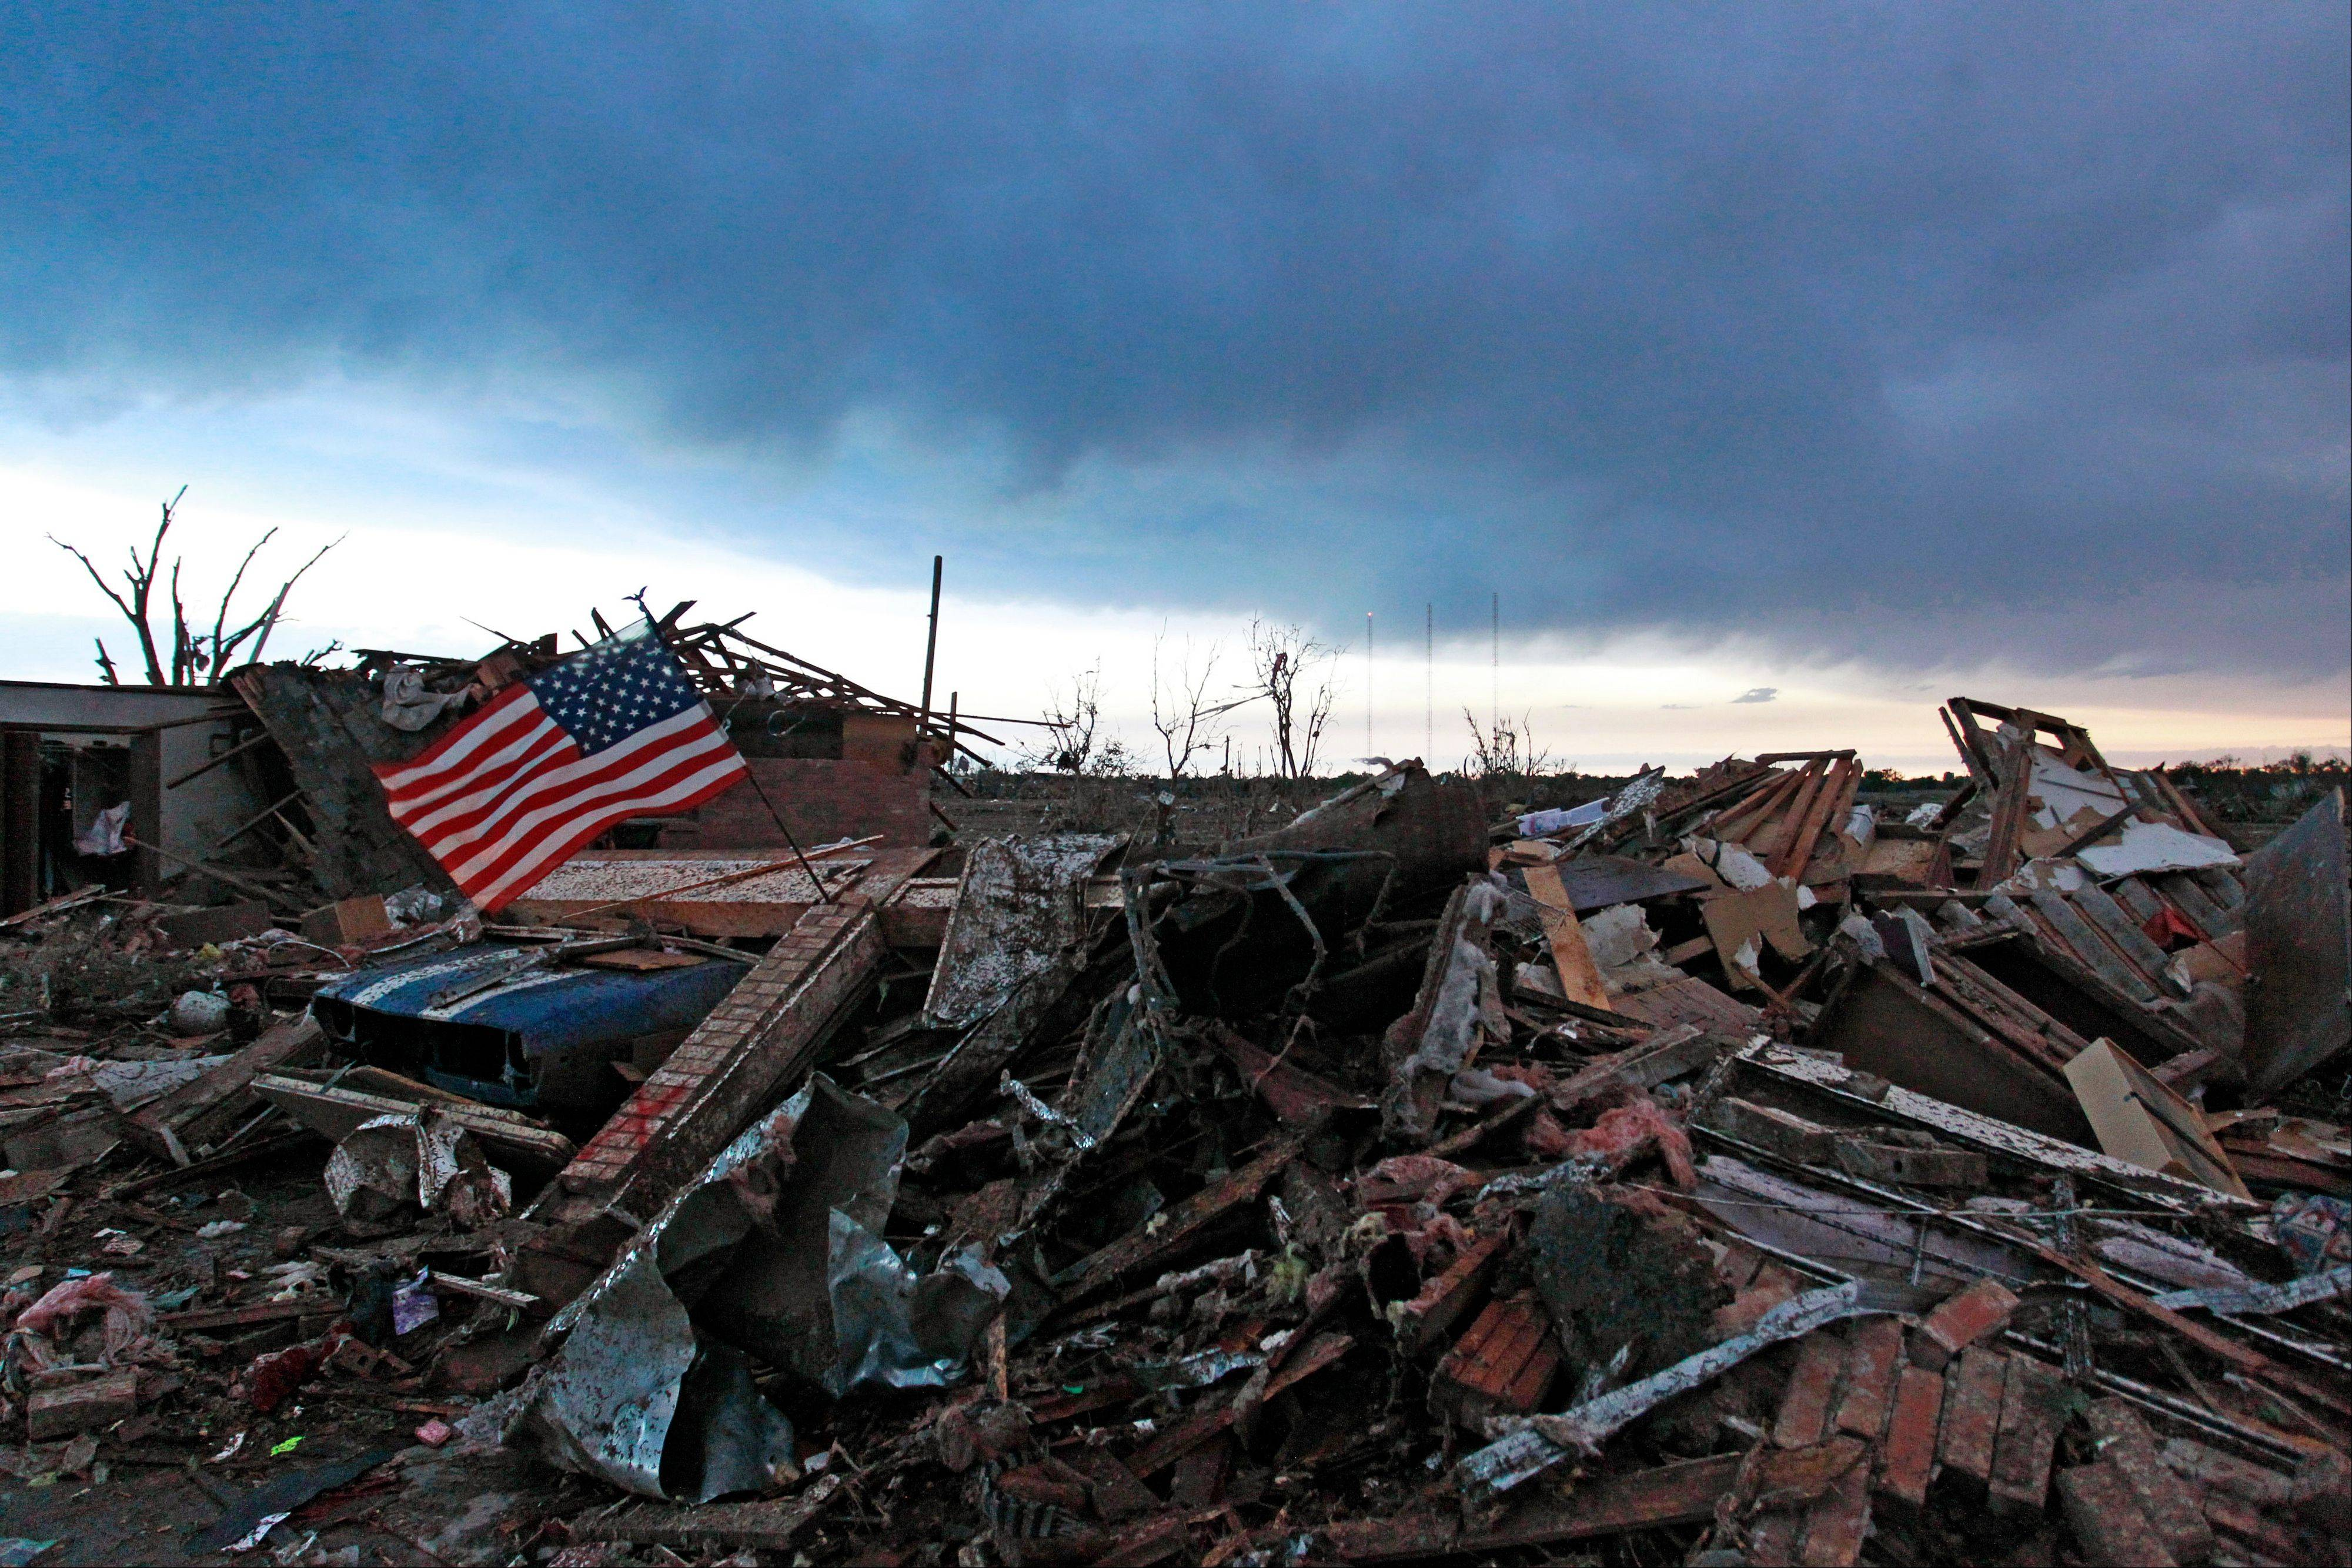 An American flag blows in the wind at sunrise atop the rubble of a destroyed home a day after a tornado moved through Moore, Okla., Tuesday, May 21, 2013. The monstrous tornado roared through the Oklahoma City suburb Monday, flattening entire neighborhoods and destroying an elementary school with a direct blow as children and teachers huddled against winds up to 200 mph.